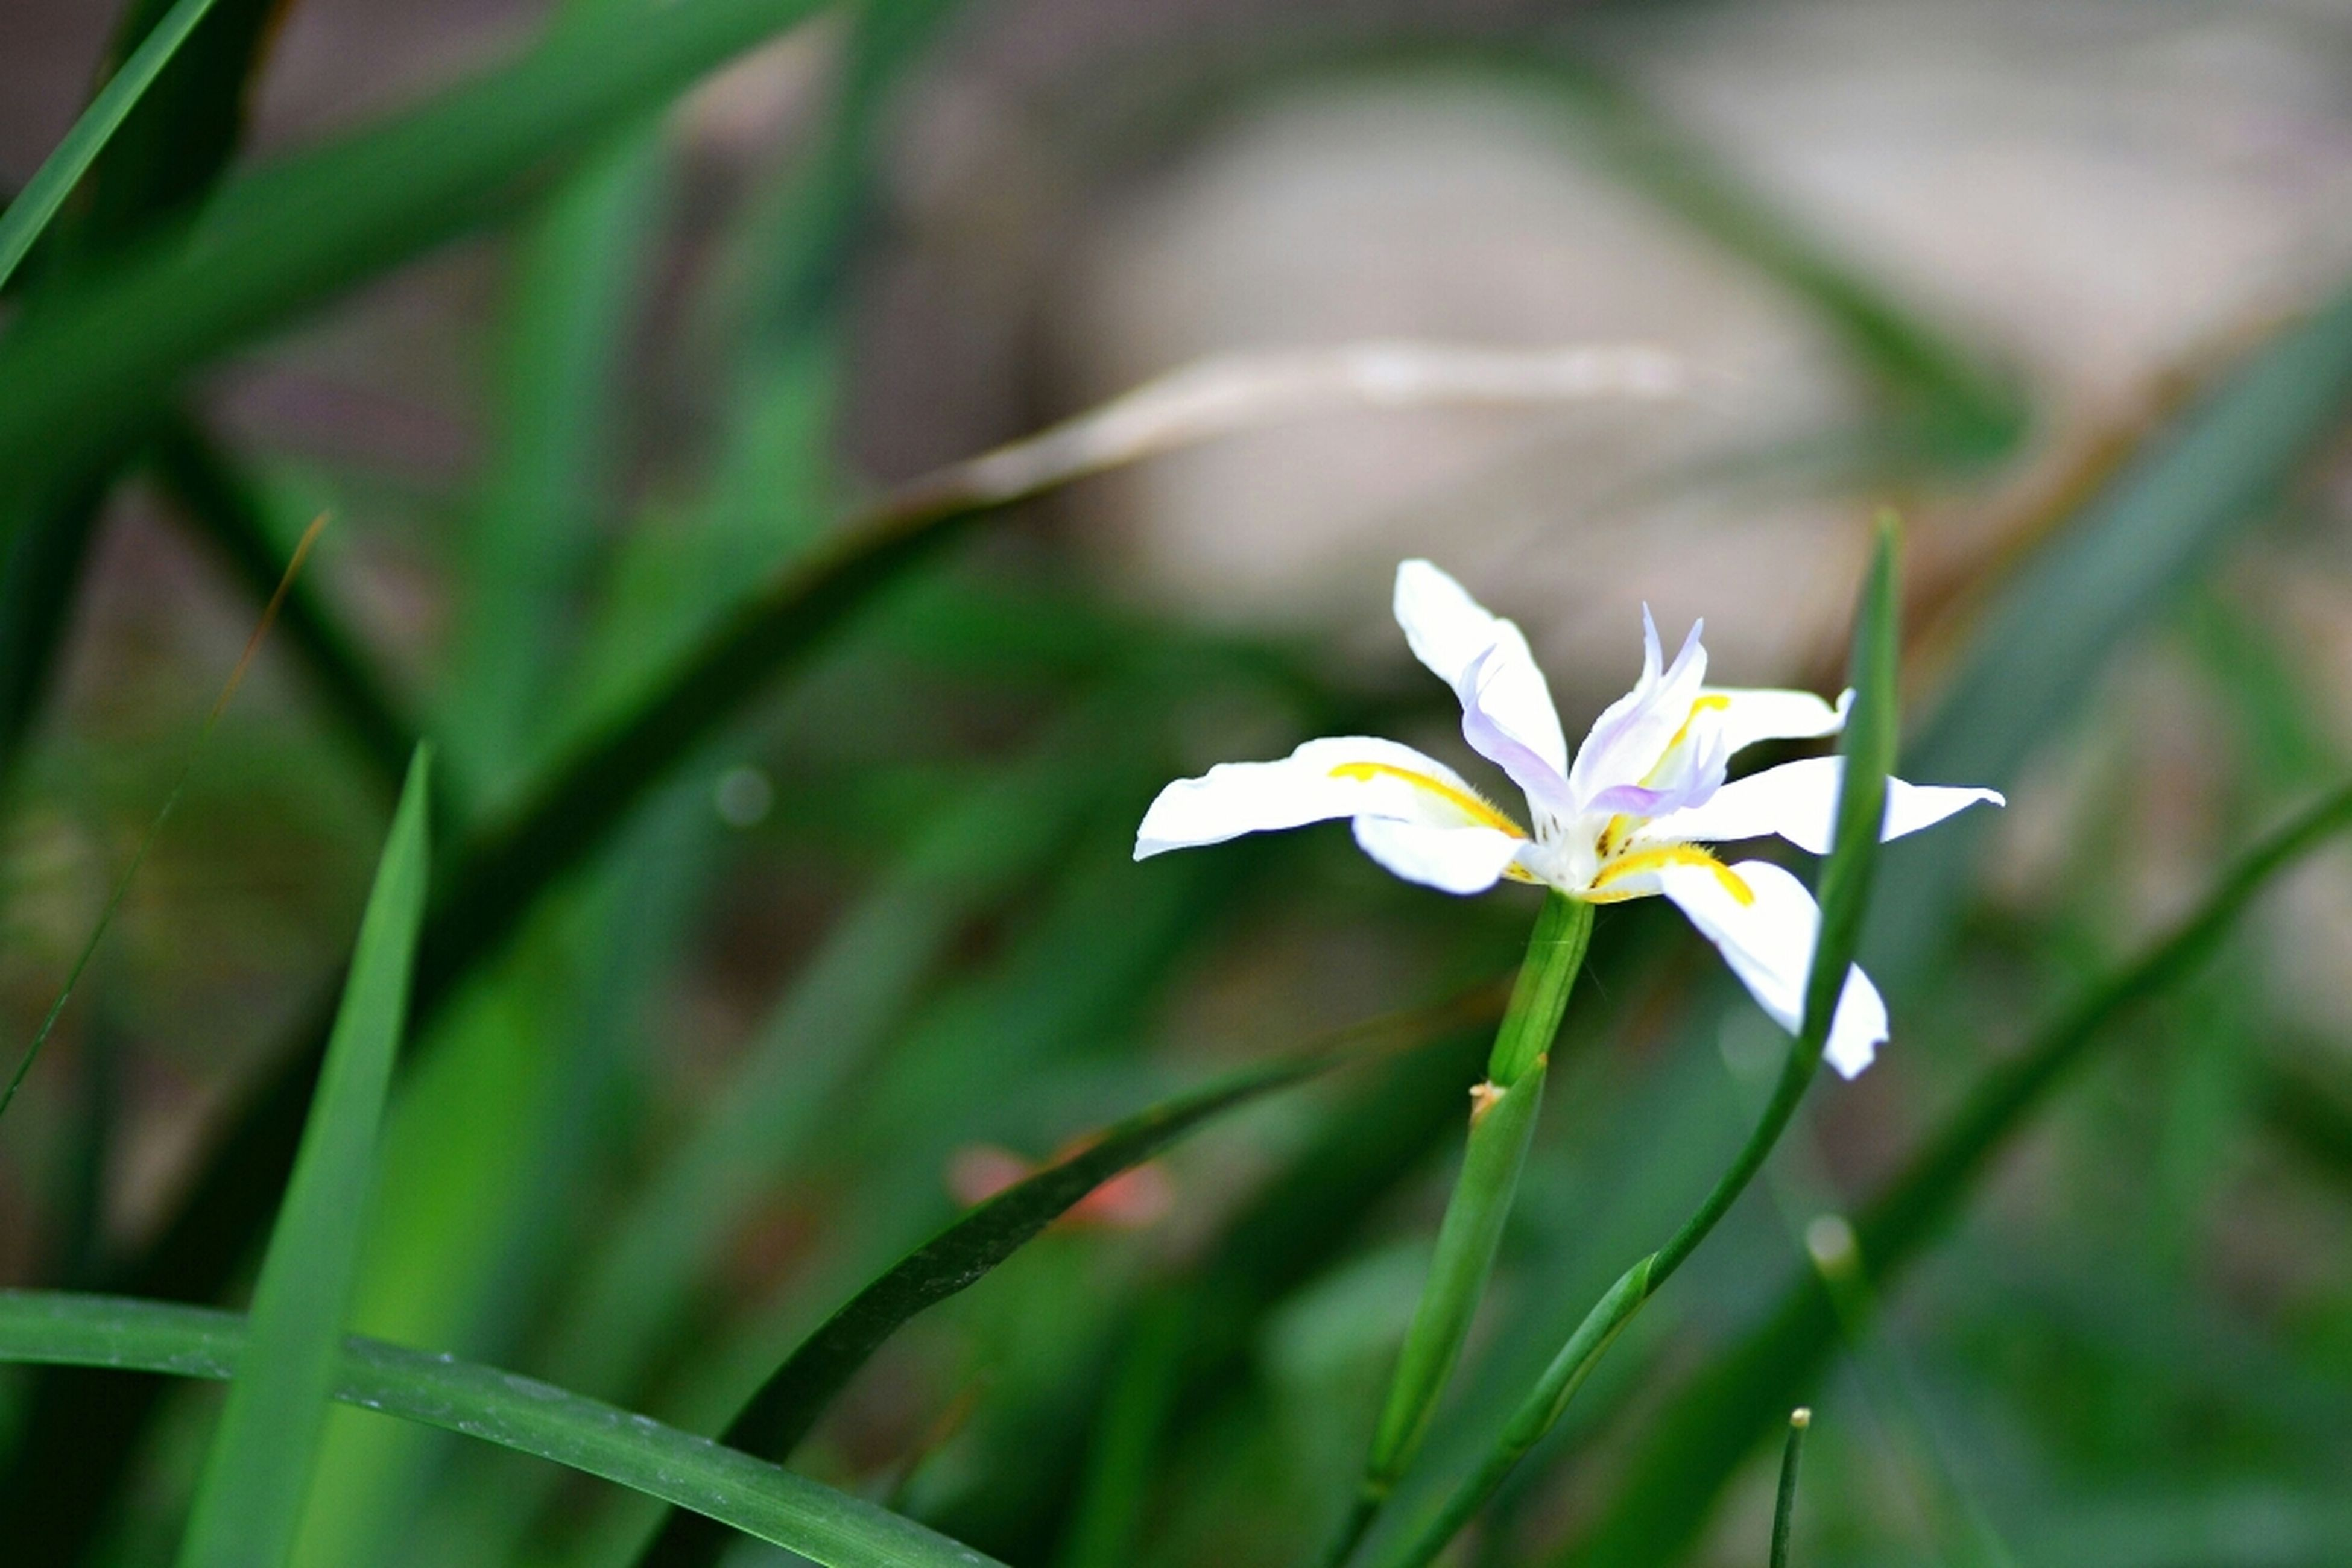 flower, freshness, fragility, petal, growth, flower head, white color, beauty in nature, focus on foreground, close-up, stem, nature, plant, blooming, field, white, selective focus, in bloom, single flower, green color